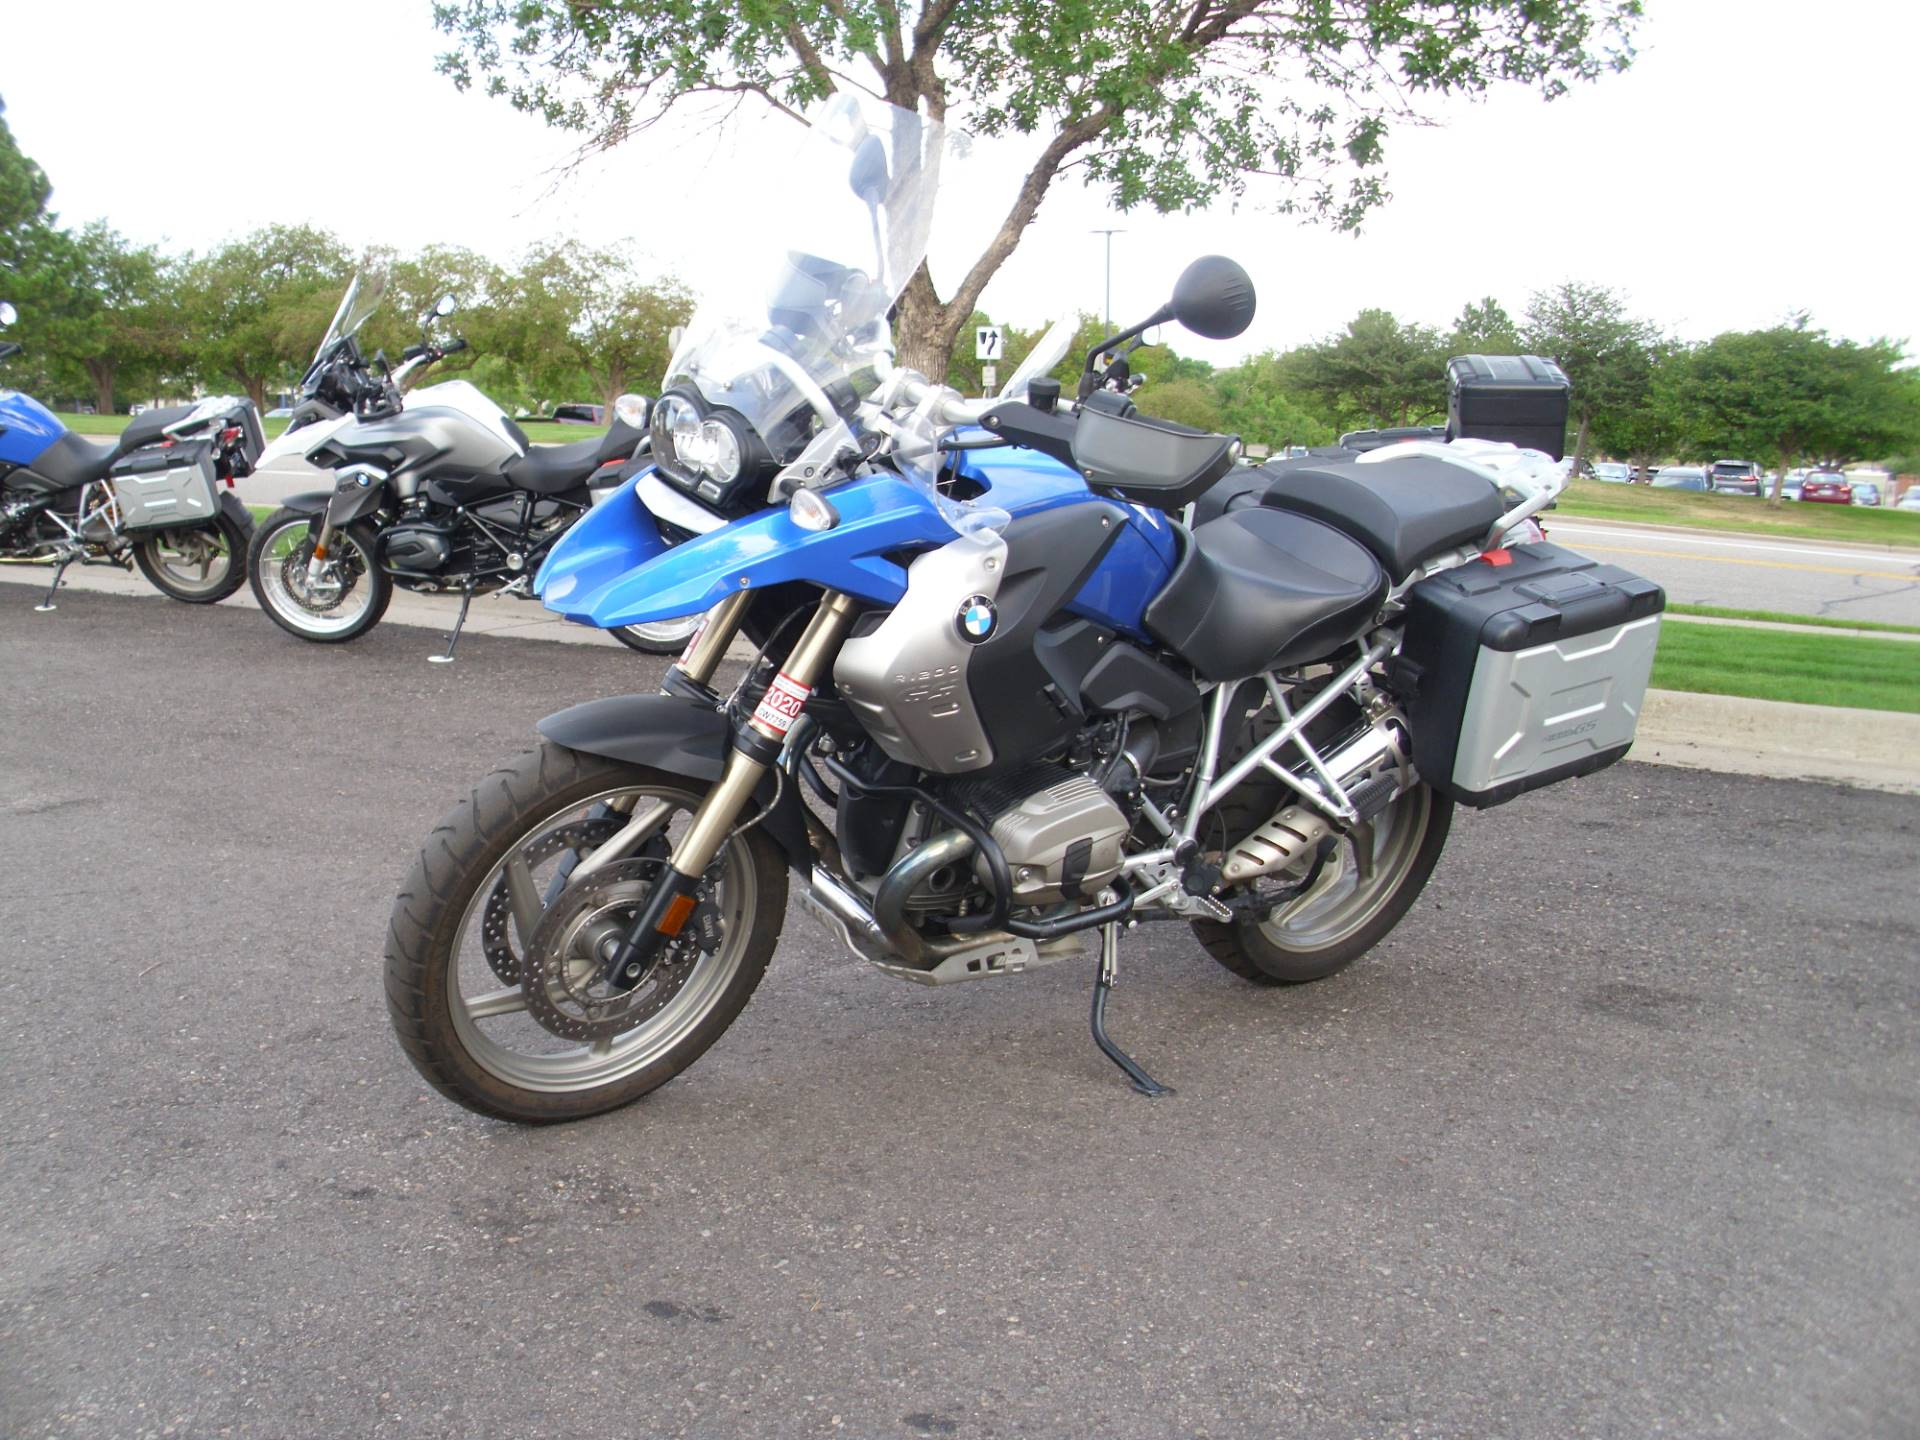 2012 BMW R 1200 GS in Centennial, Colorado - Photo 4